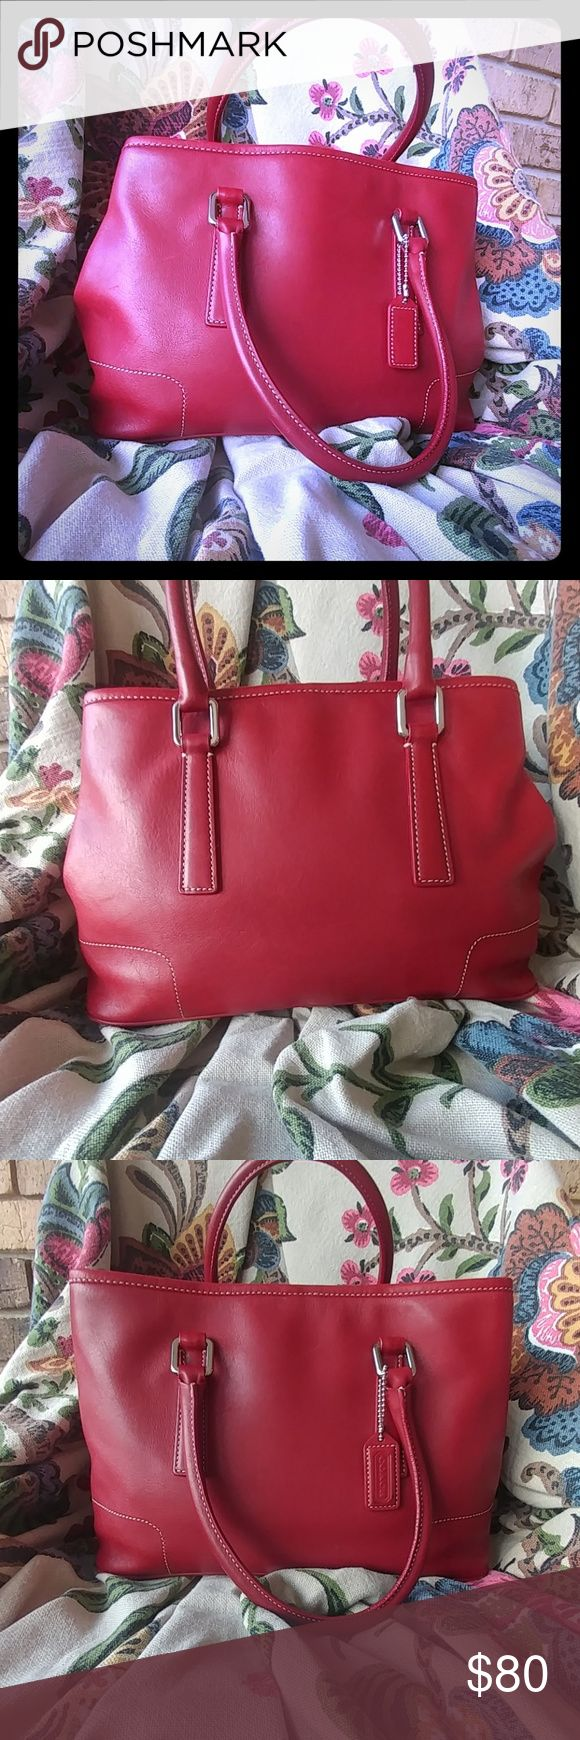 "Hampton Red Coach Satchel Lovely older Coach bag that has slight scuffs and a 1/4"" spot on interior. Purse is stuffed for picture taking. Feel free to ask for more pics or to make an offer. Coach Bags Satchels"